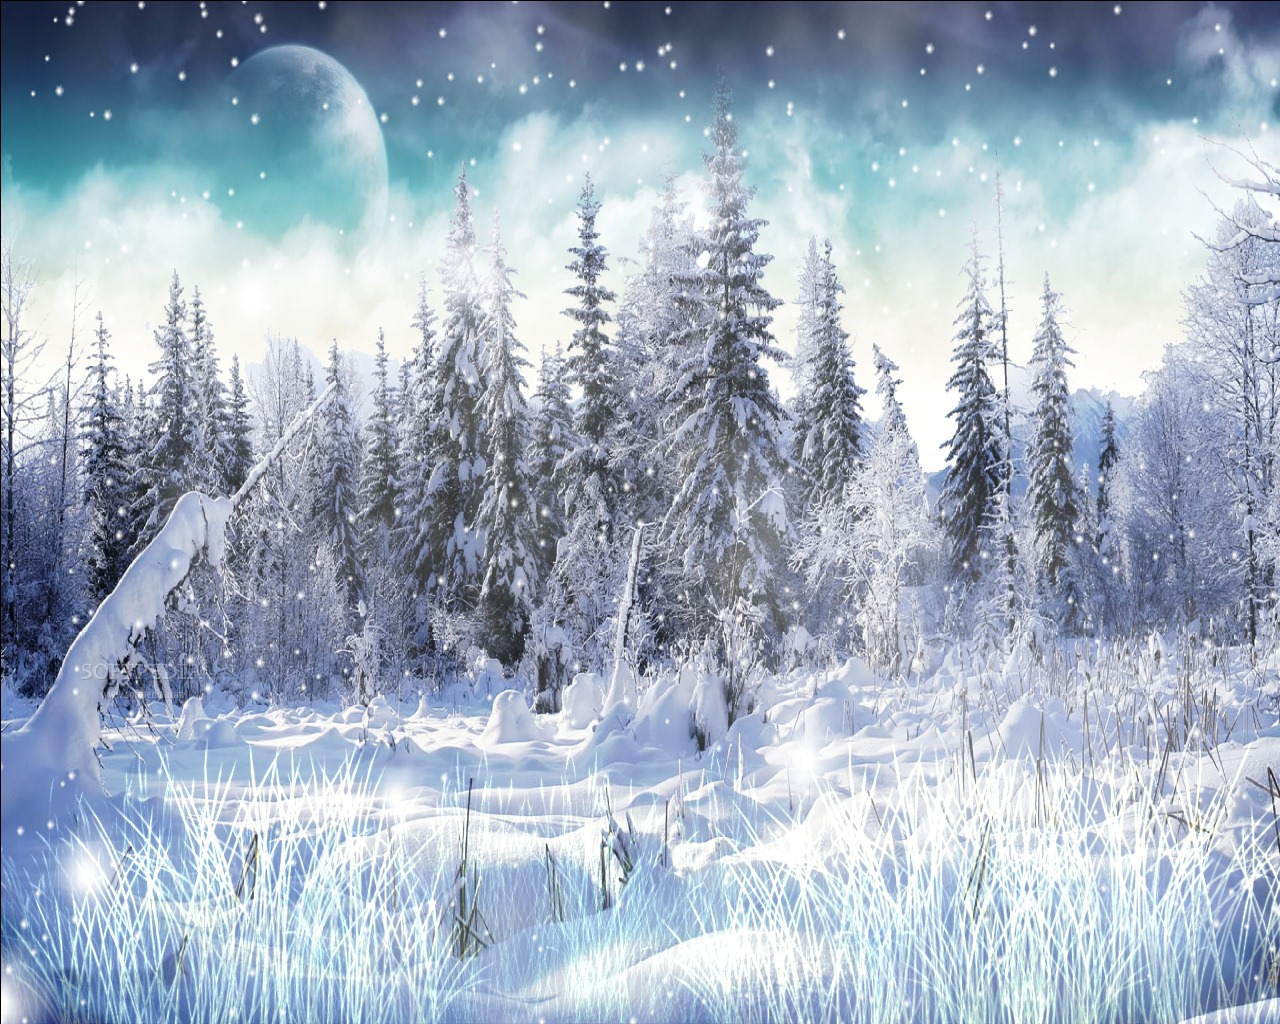 Falling Snow Live Wallpaper For Pc Download Winter Snow Screensaver 1 0